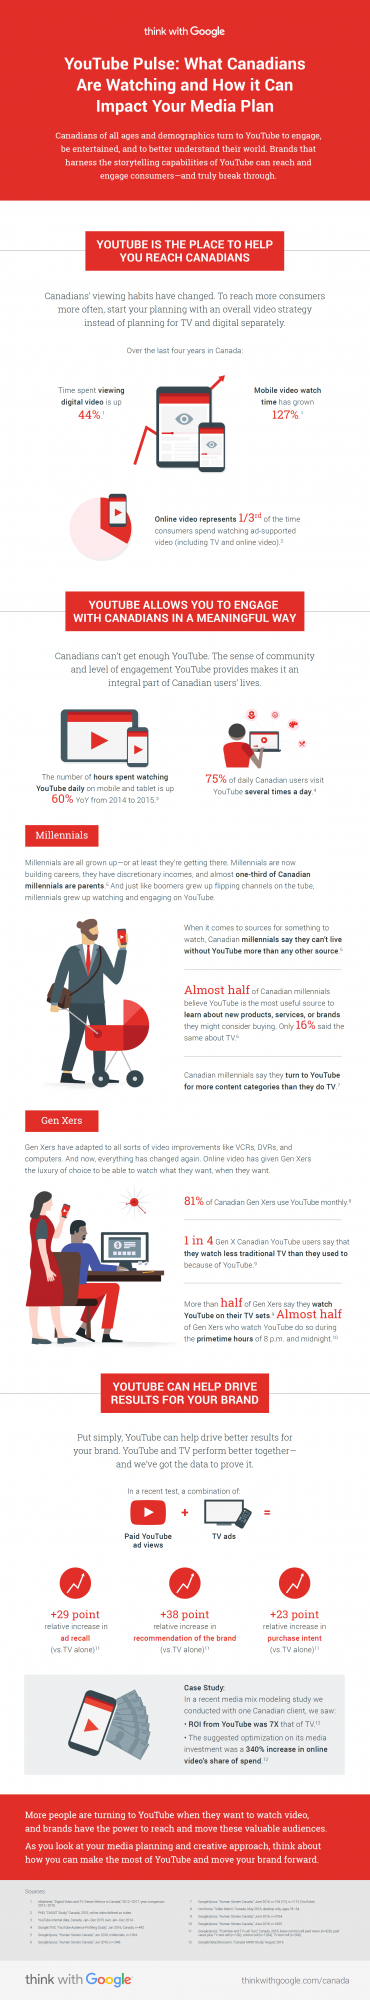 youtube-pulse-infographic